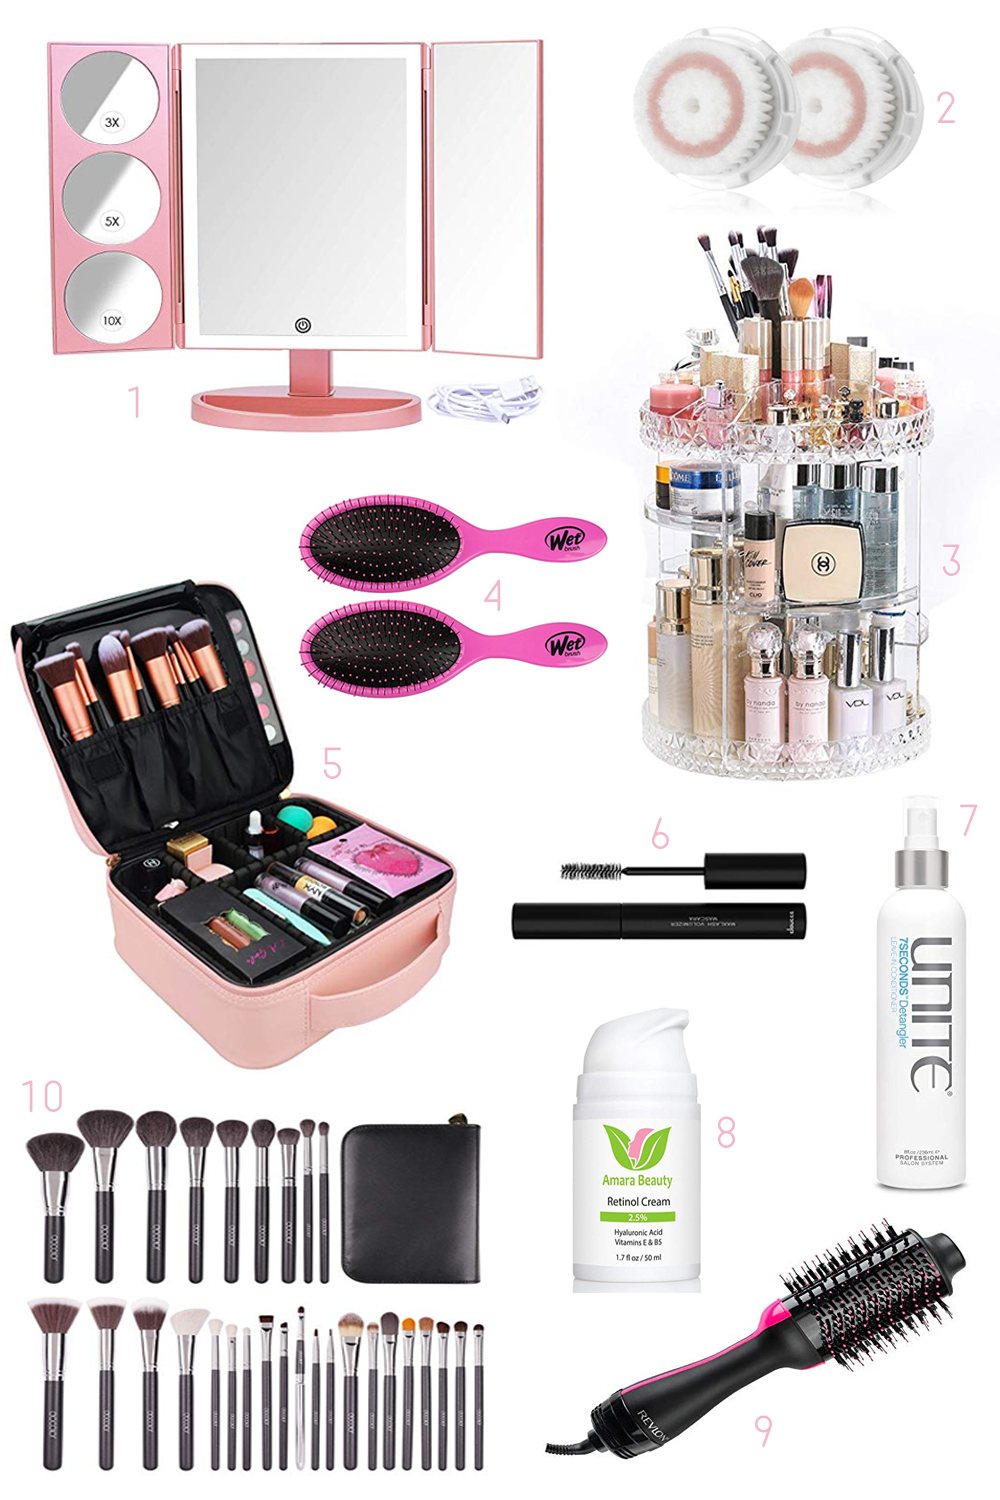 top prime day beauty deals, best prime day 2019 beauty deals, Best Prime Day 2019 Deals by popular affordable fashion blogger Stephanie Ziajka from Diary of a Debutante